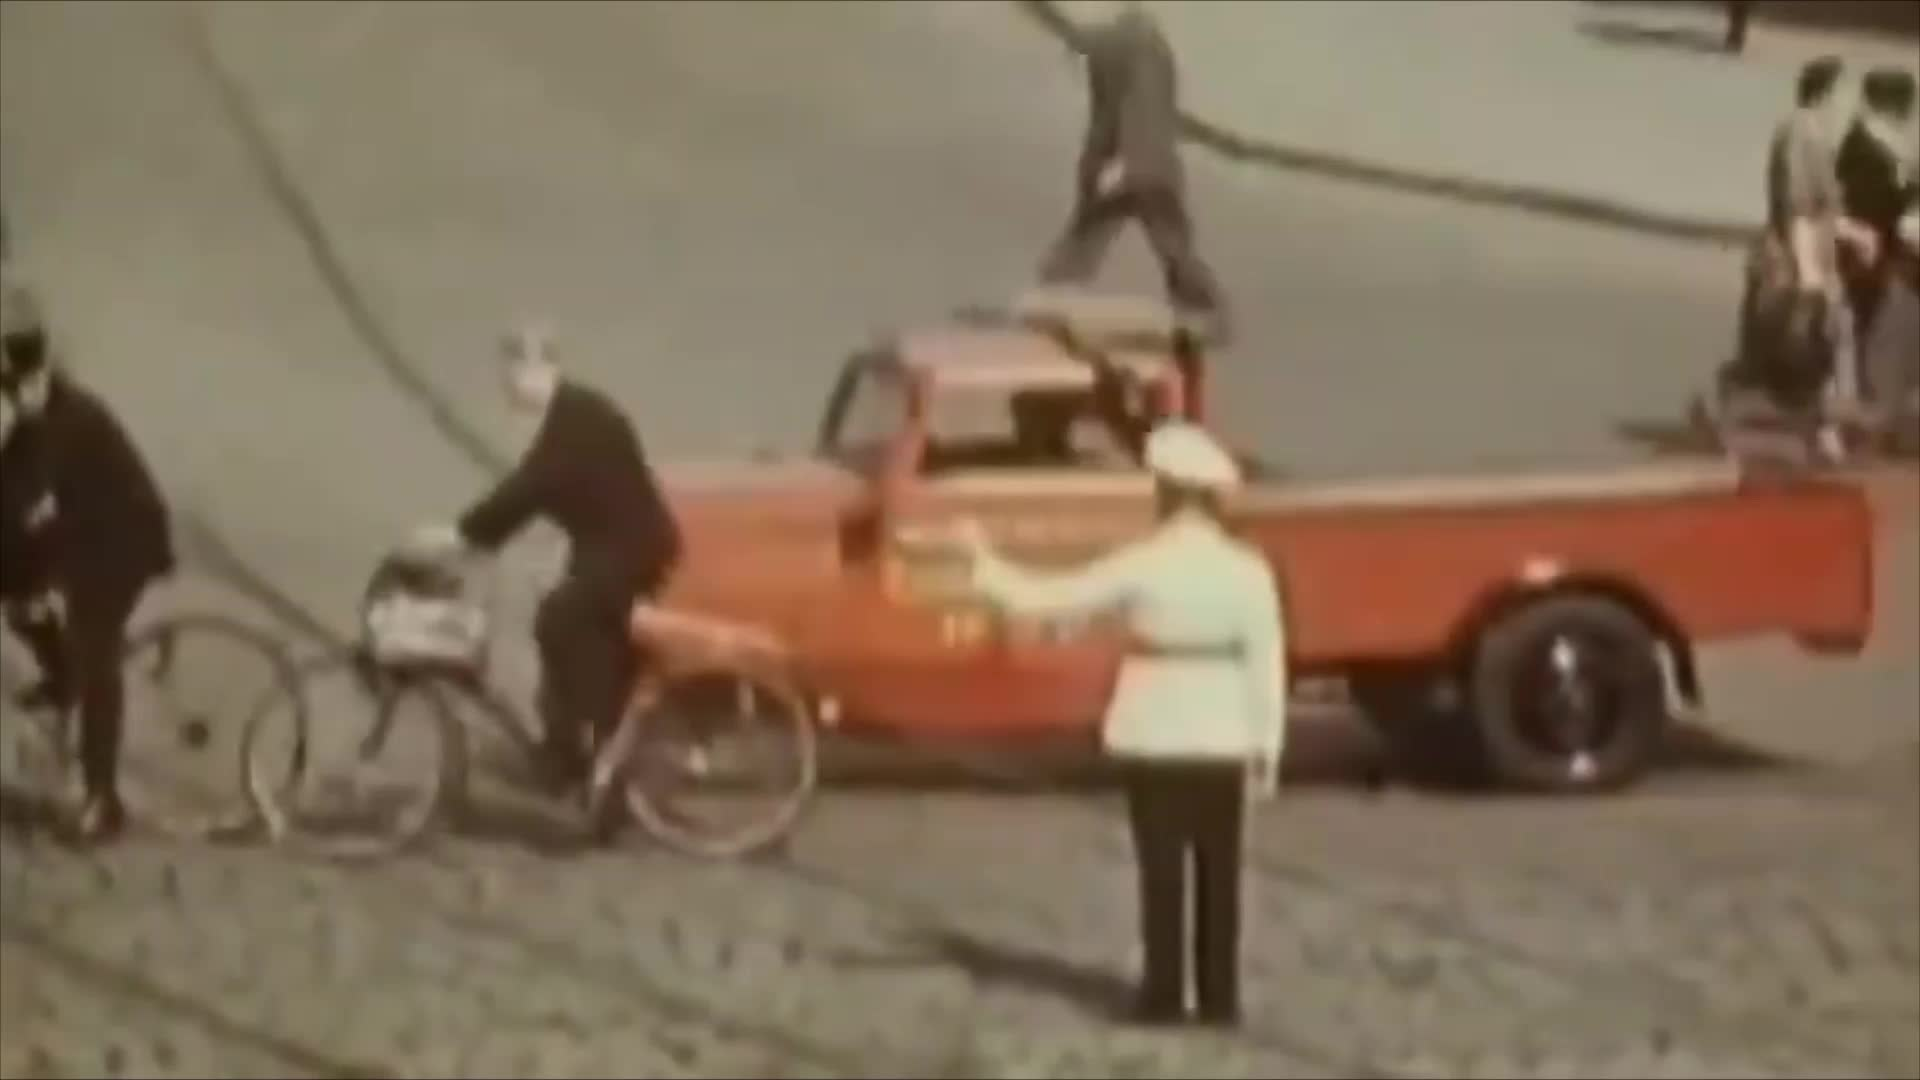 The greatest nation Aryan people have ever built (so far) NS Germany 1933-1945.